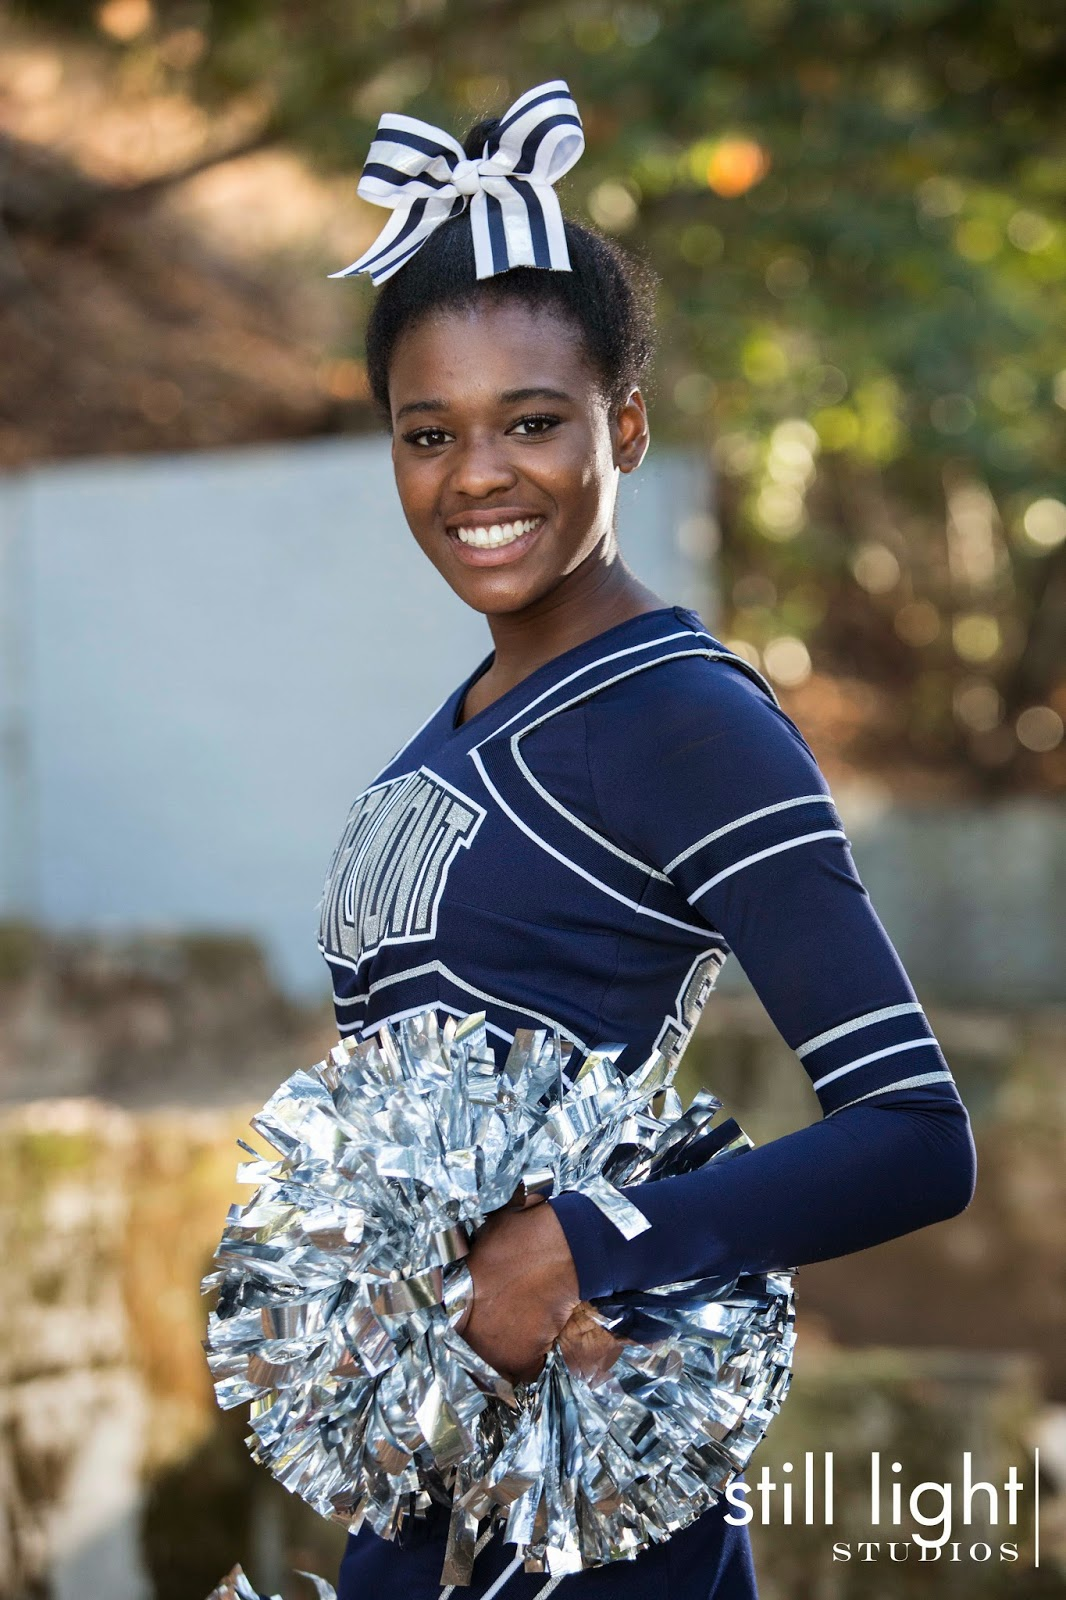 Still Light Studios Carlmont High Cheer 2013